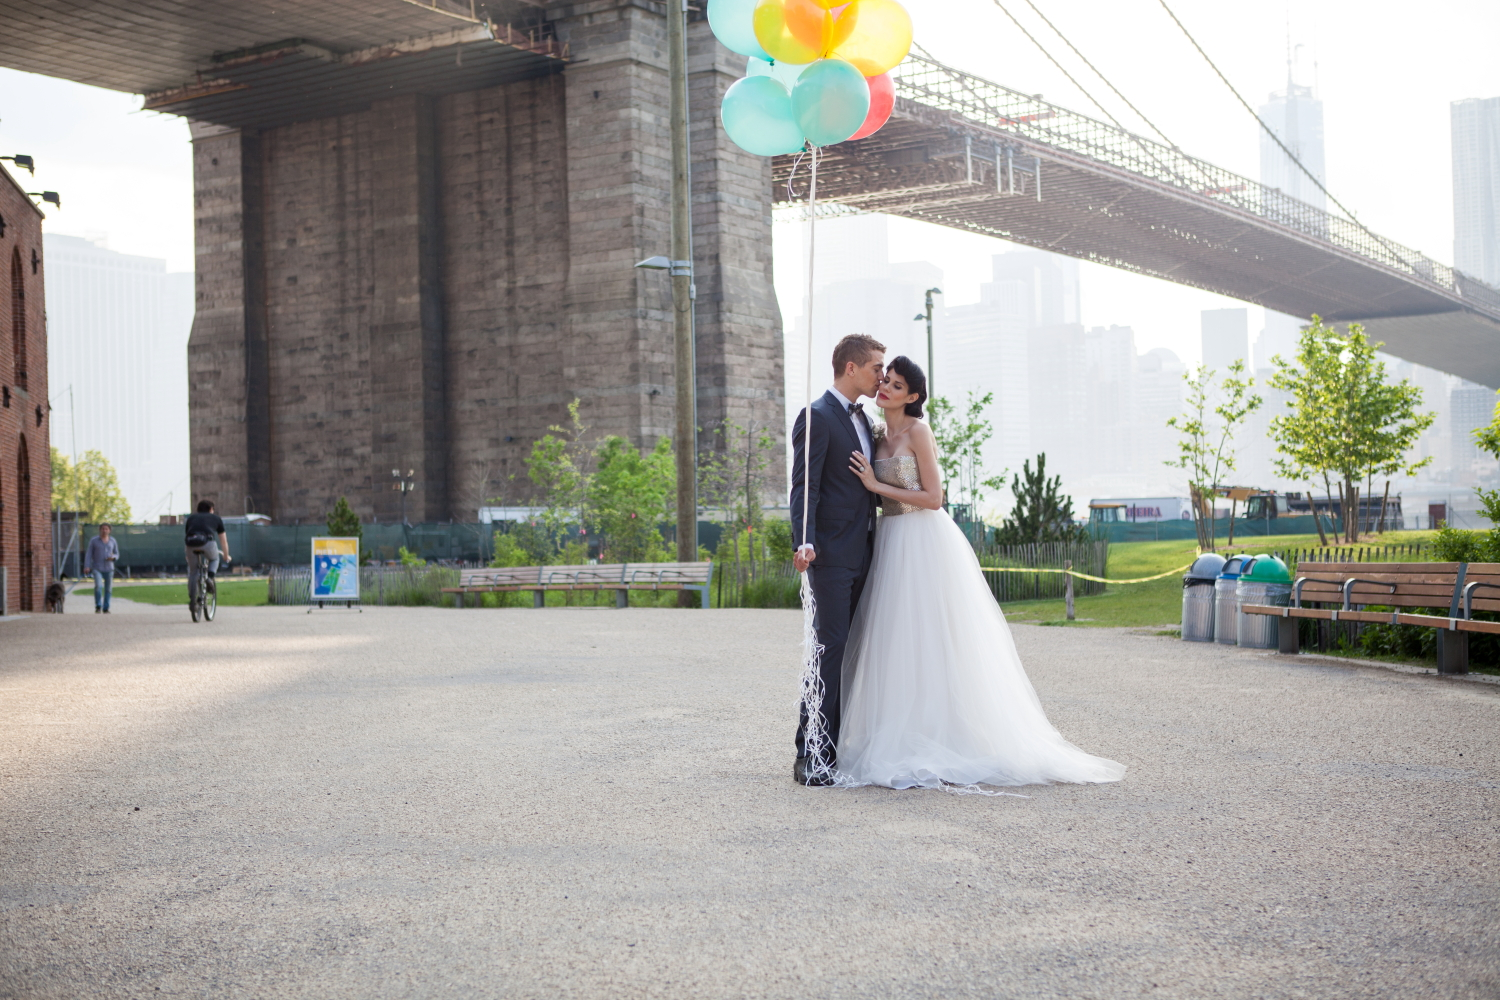 Carnival Wedding Inspiration From Alexis June Weddings